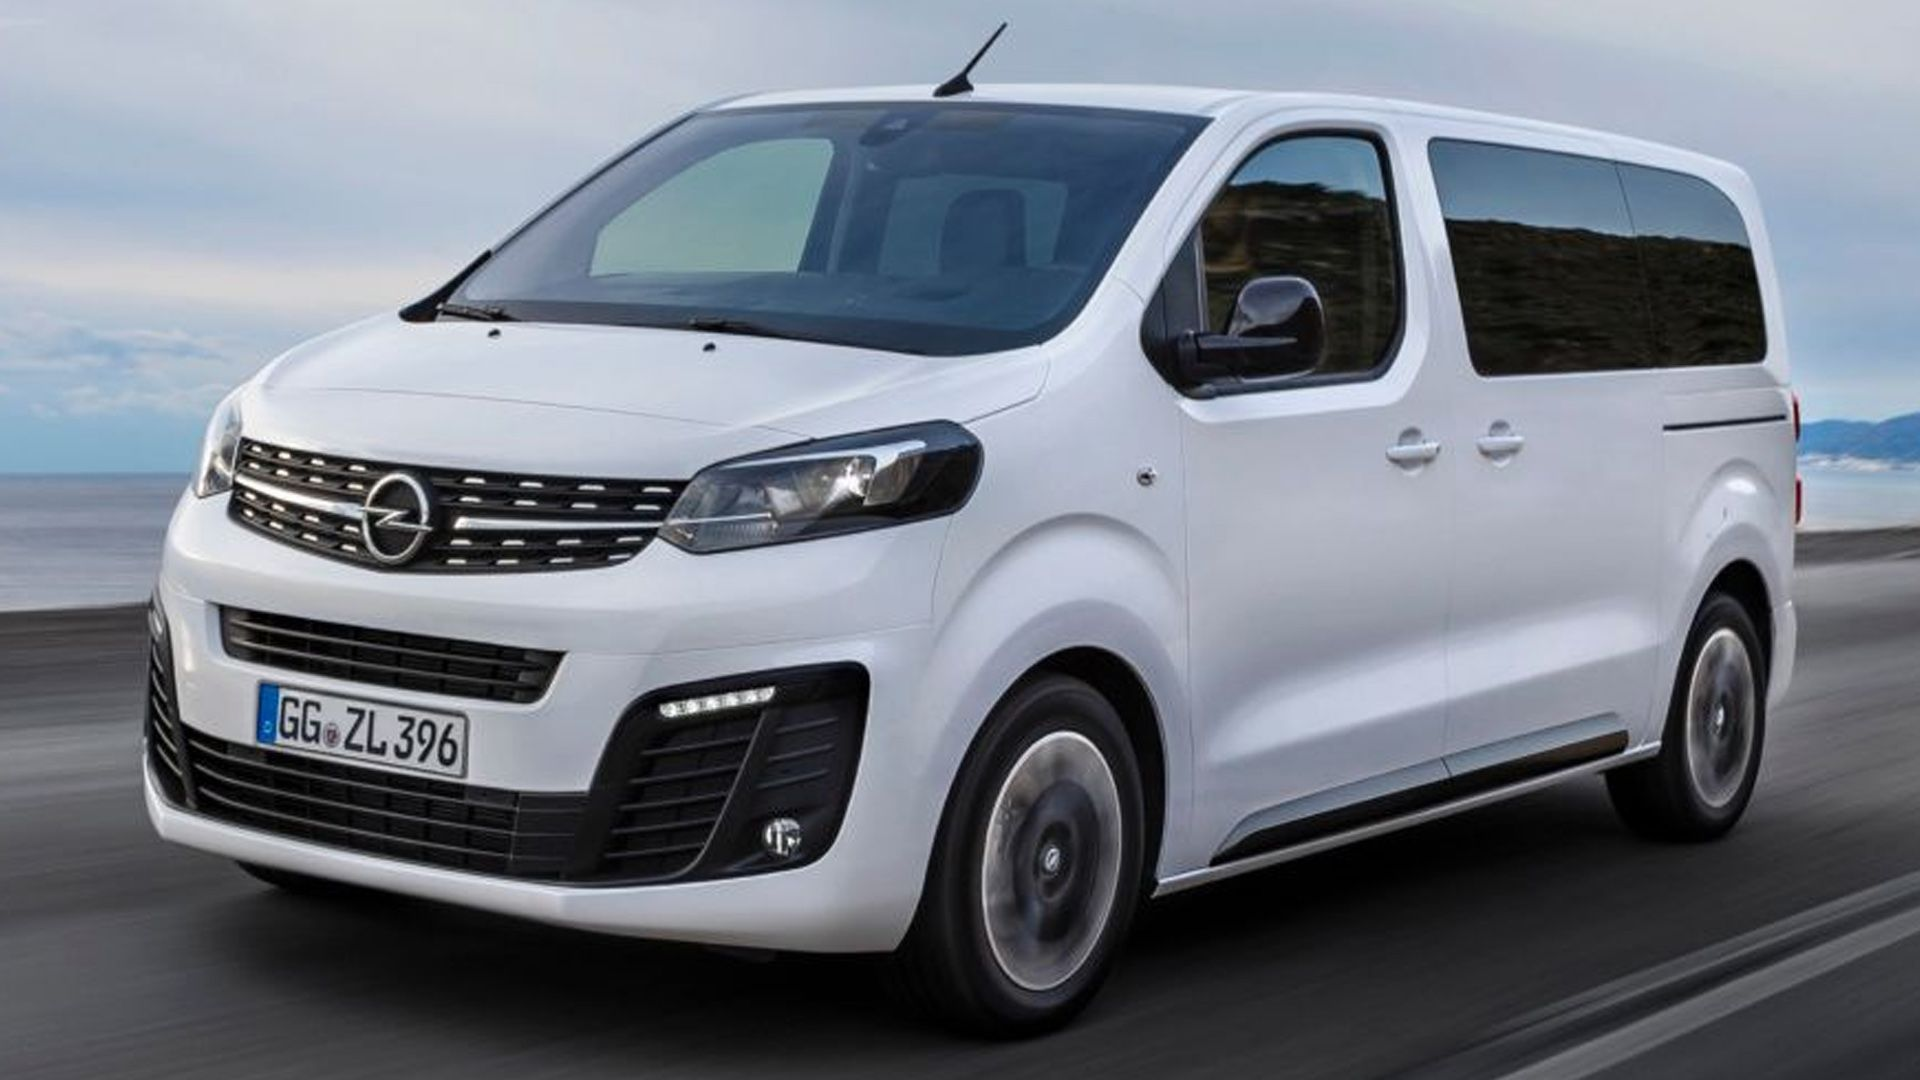 2020 Opel Zafira Life Opel Gmc Motorhome Multi Purpose Vehicle